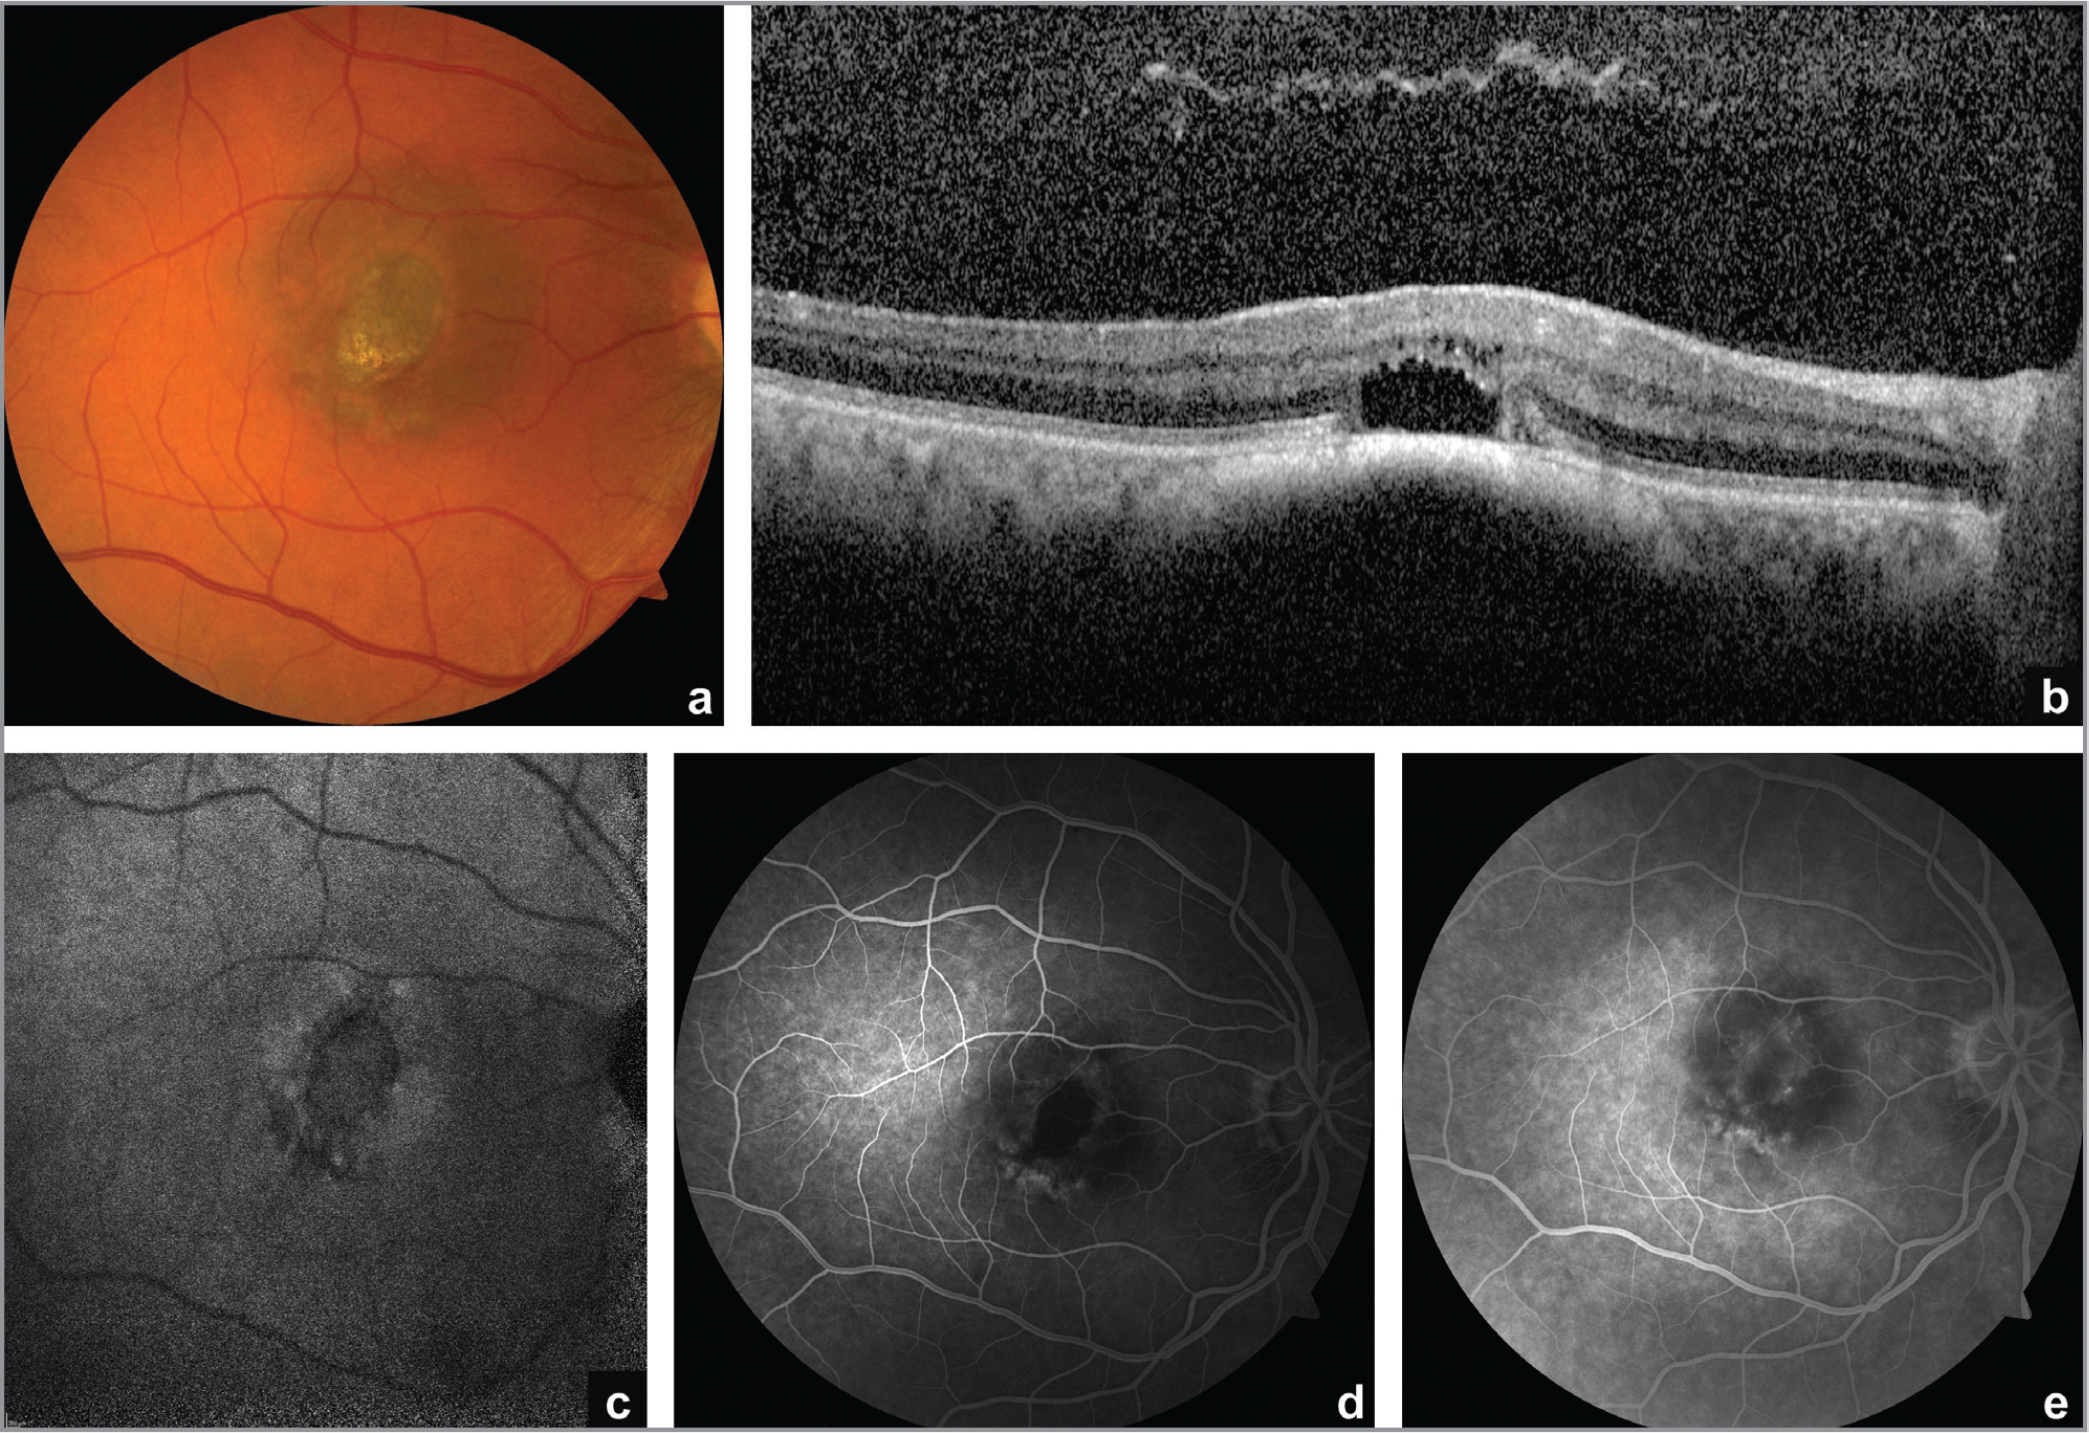 (a) Color photograph of the right eye shows a brown macular lesion with oval central retinal pigment epithelial (RPE) atrophy. (b) Subfoveal enhanced depth imaging optical coherence tomography reveals a slightly elevated choroidal lesion with gentle-sloping anterior border and deep shadowing. Overlying this lesion, there is outer retinal atrophy. (c) Infrared autofluorescence reveals central hypoautofluorescence consistent with loss of RPE. (d, e) Fluorescein angiography shows a predominantly hypofluorescent lesion with a ring of central hyperfluorescence in early (d) and late frames (e), compatible with window defect from RPE loss.